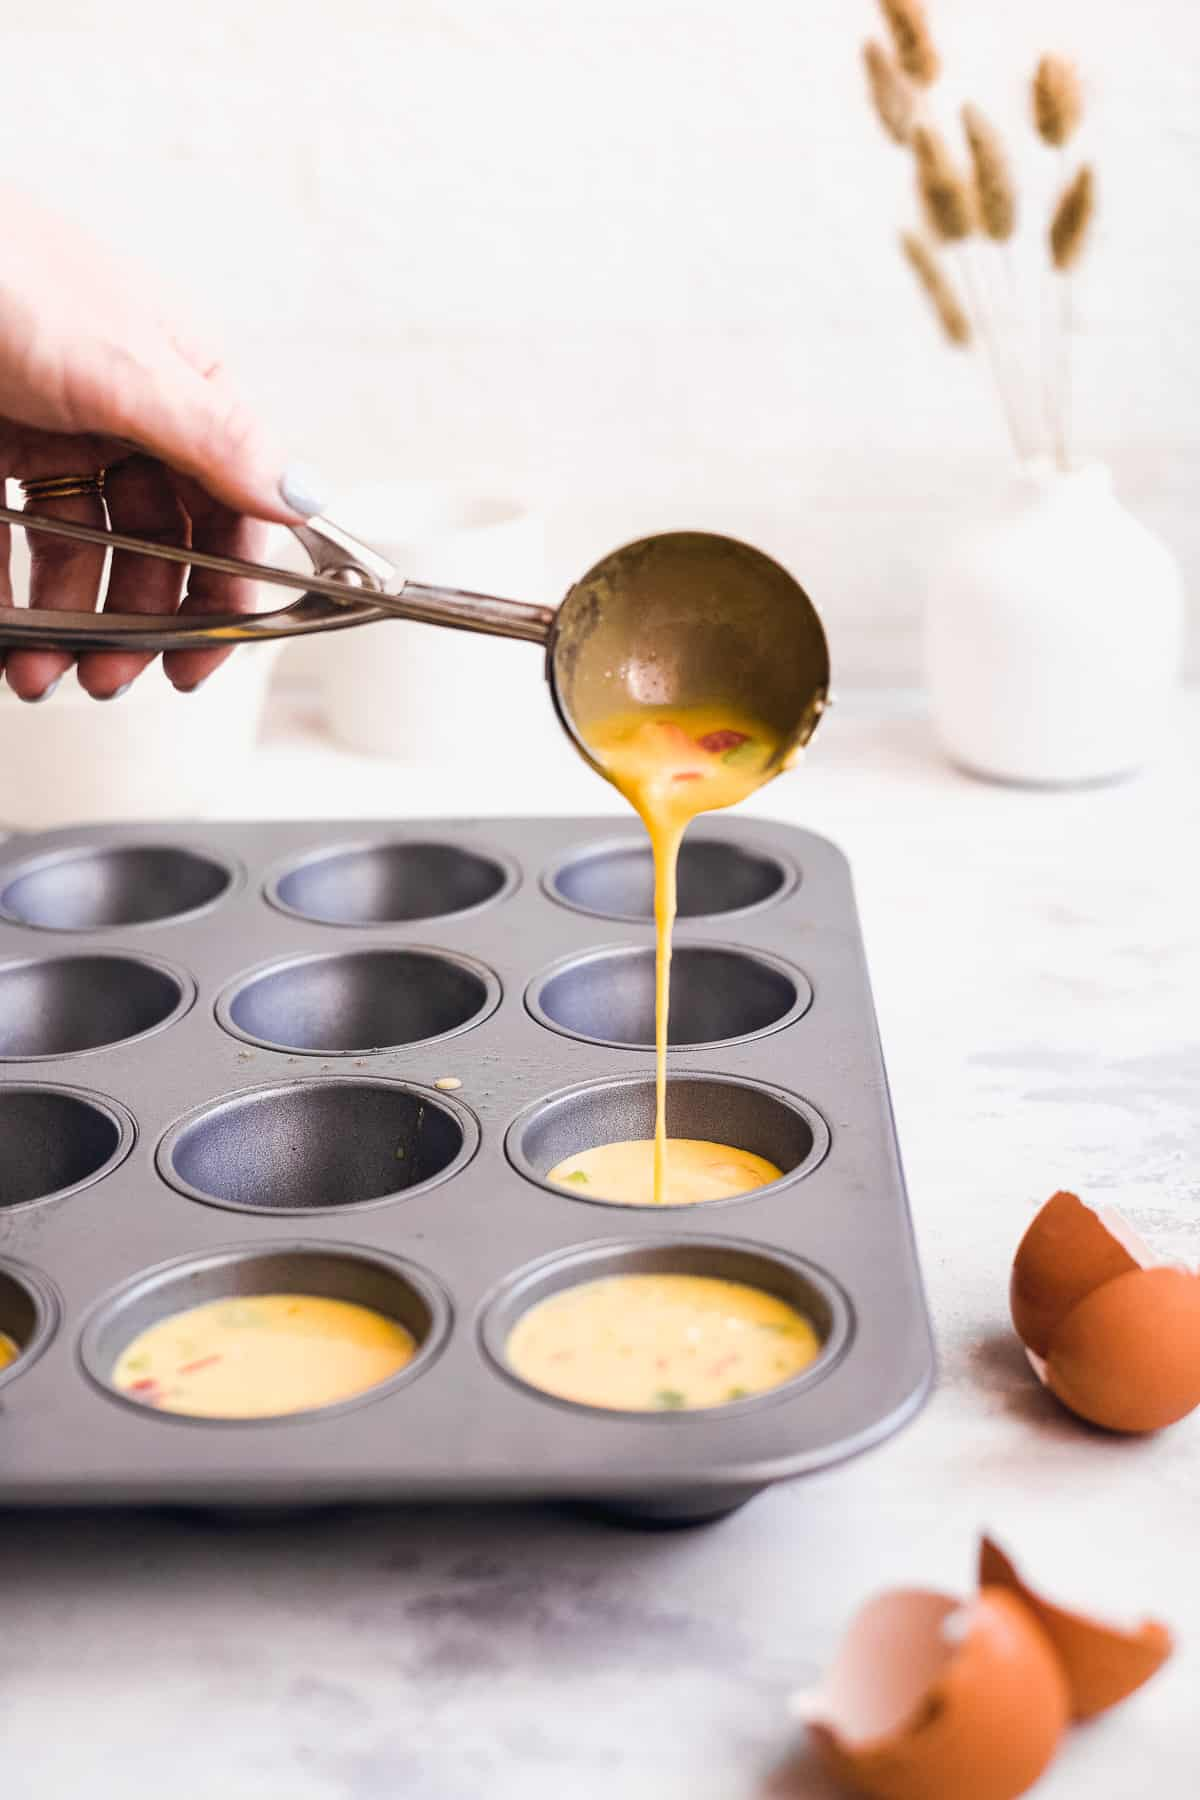 Hand pouring egg batter into a muffin tin.